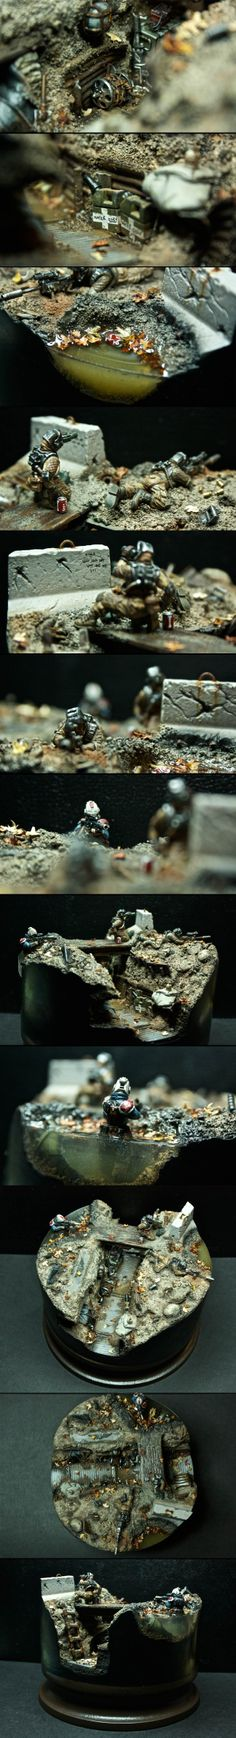 I am two bullets - Warhammer 40K Imperial Guard diorama